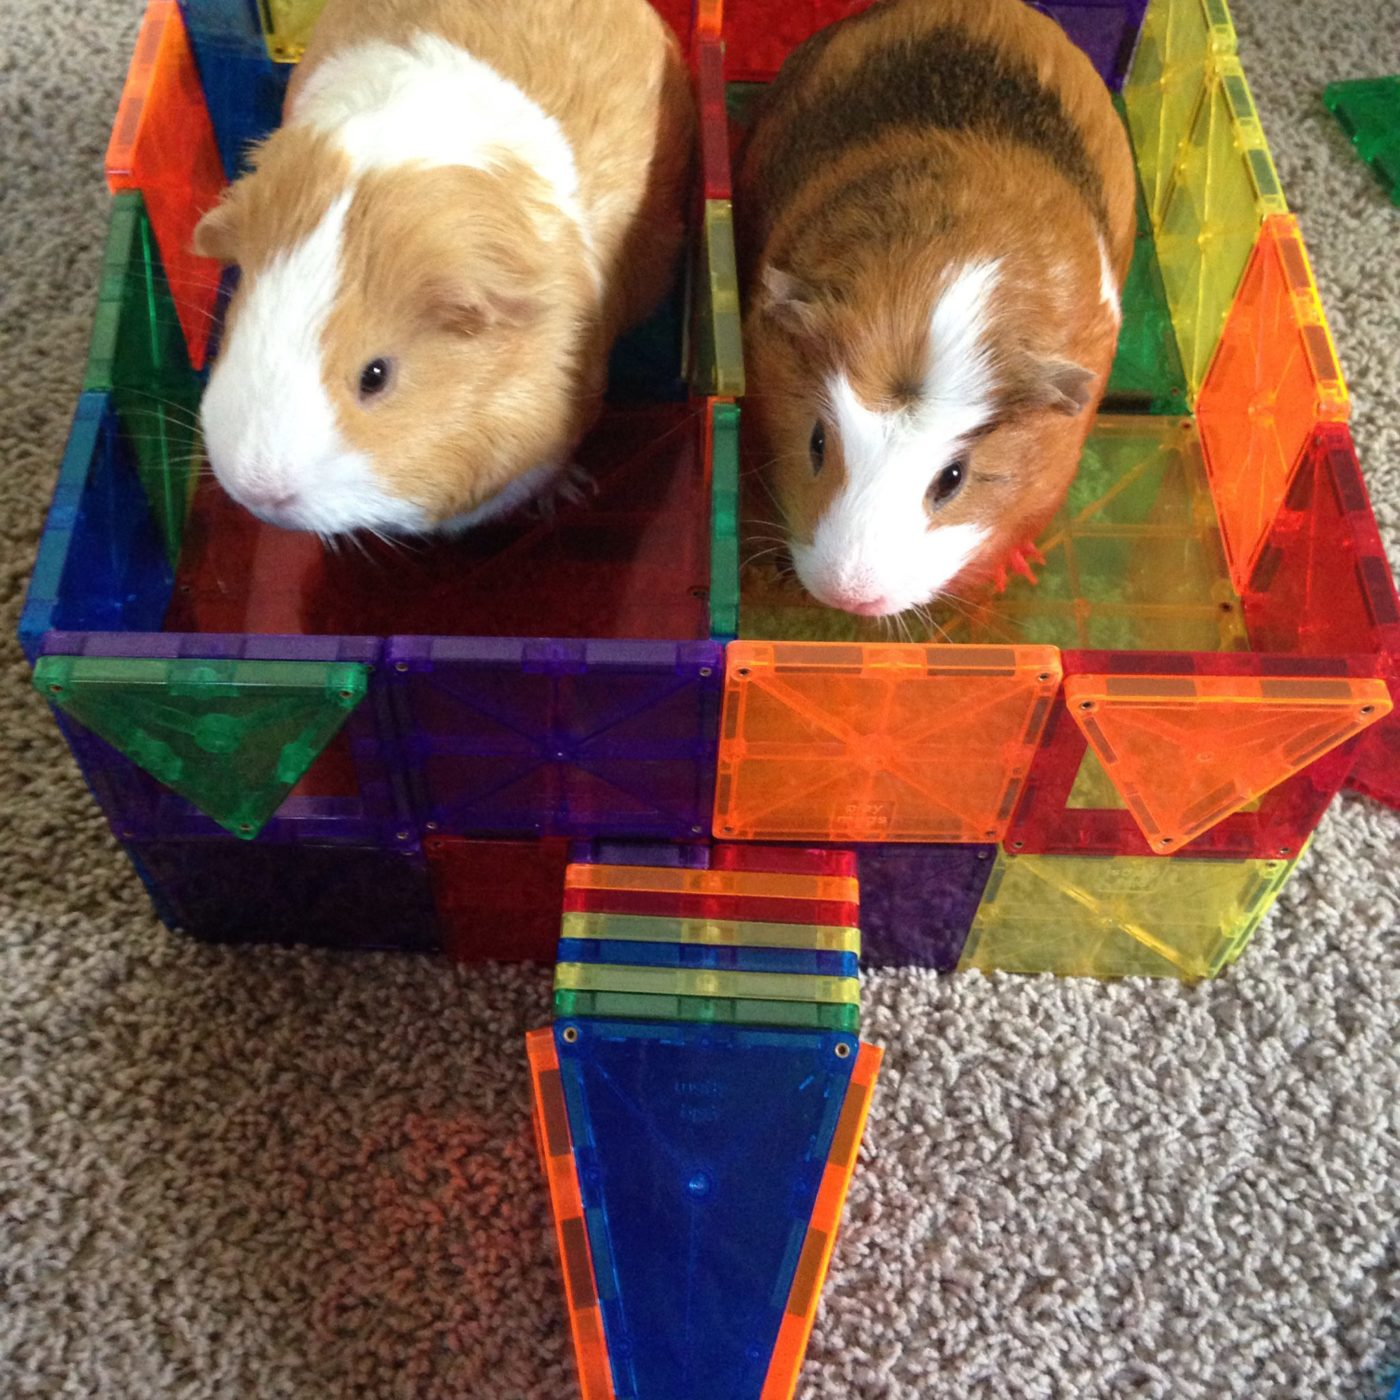 More fun with magnet tiles! A guinea pig corral!